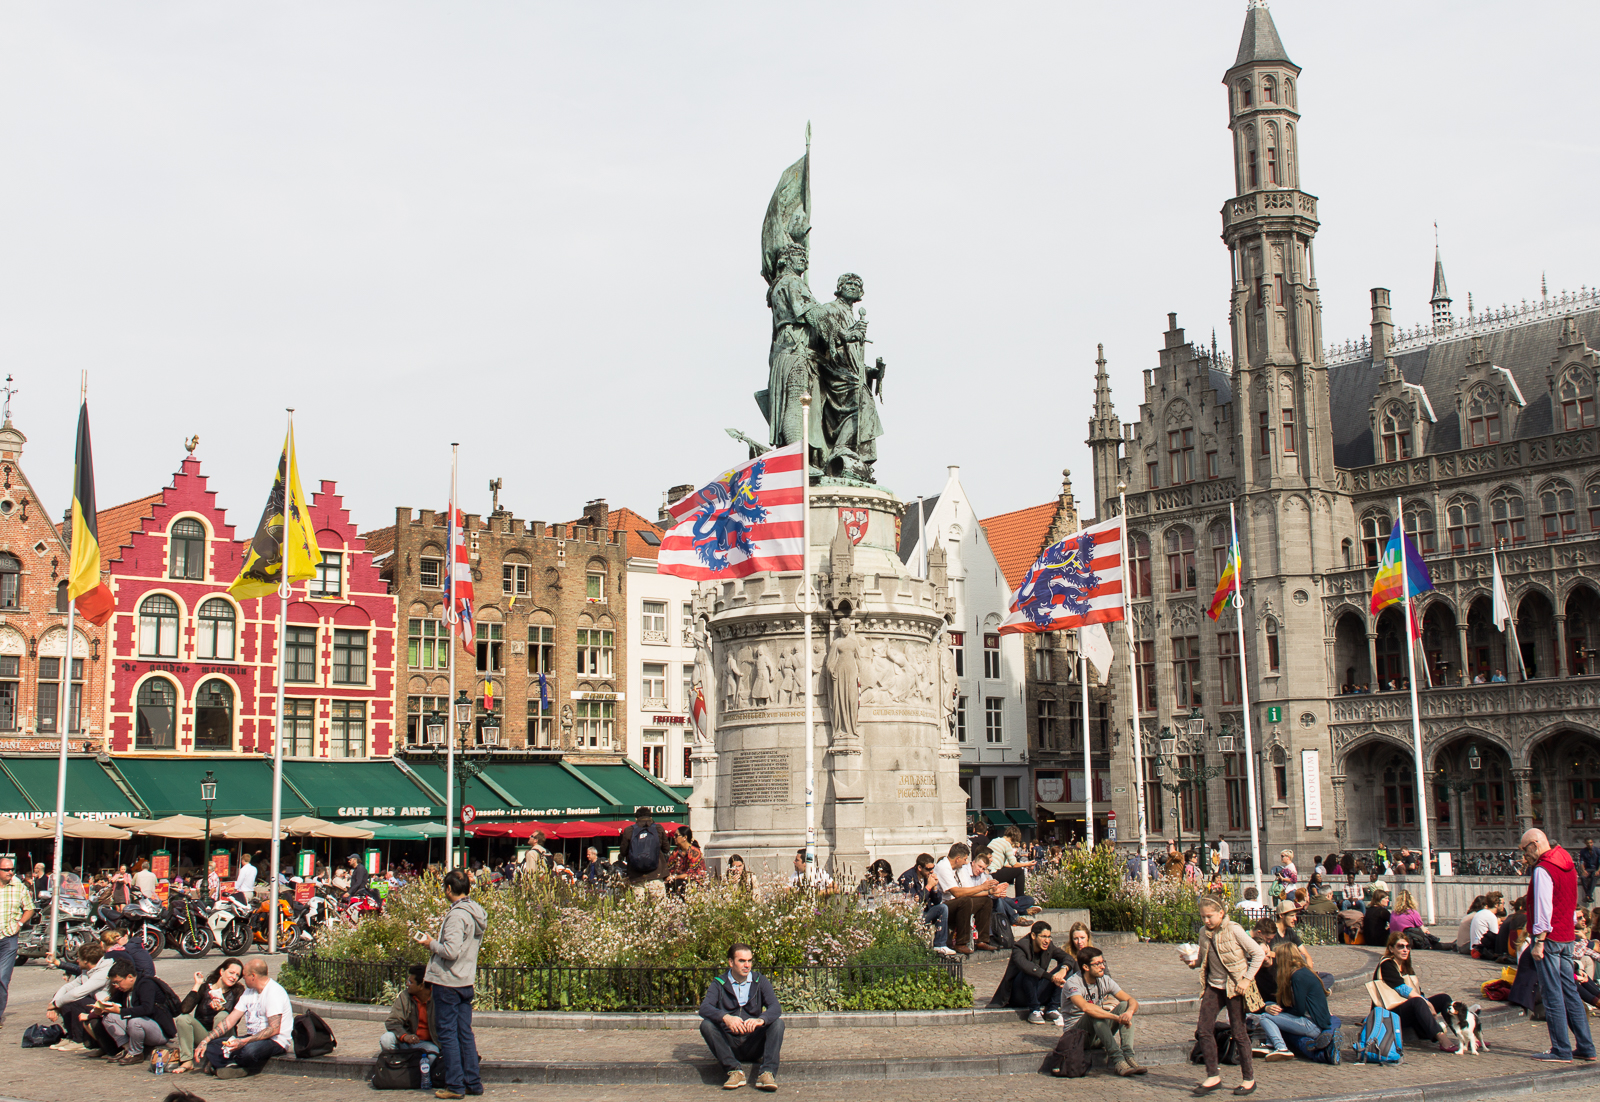 The Markt - the main square in Bruges